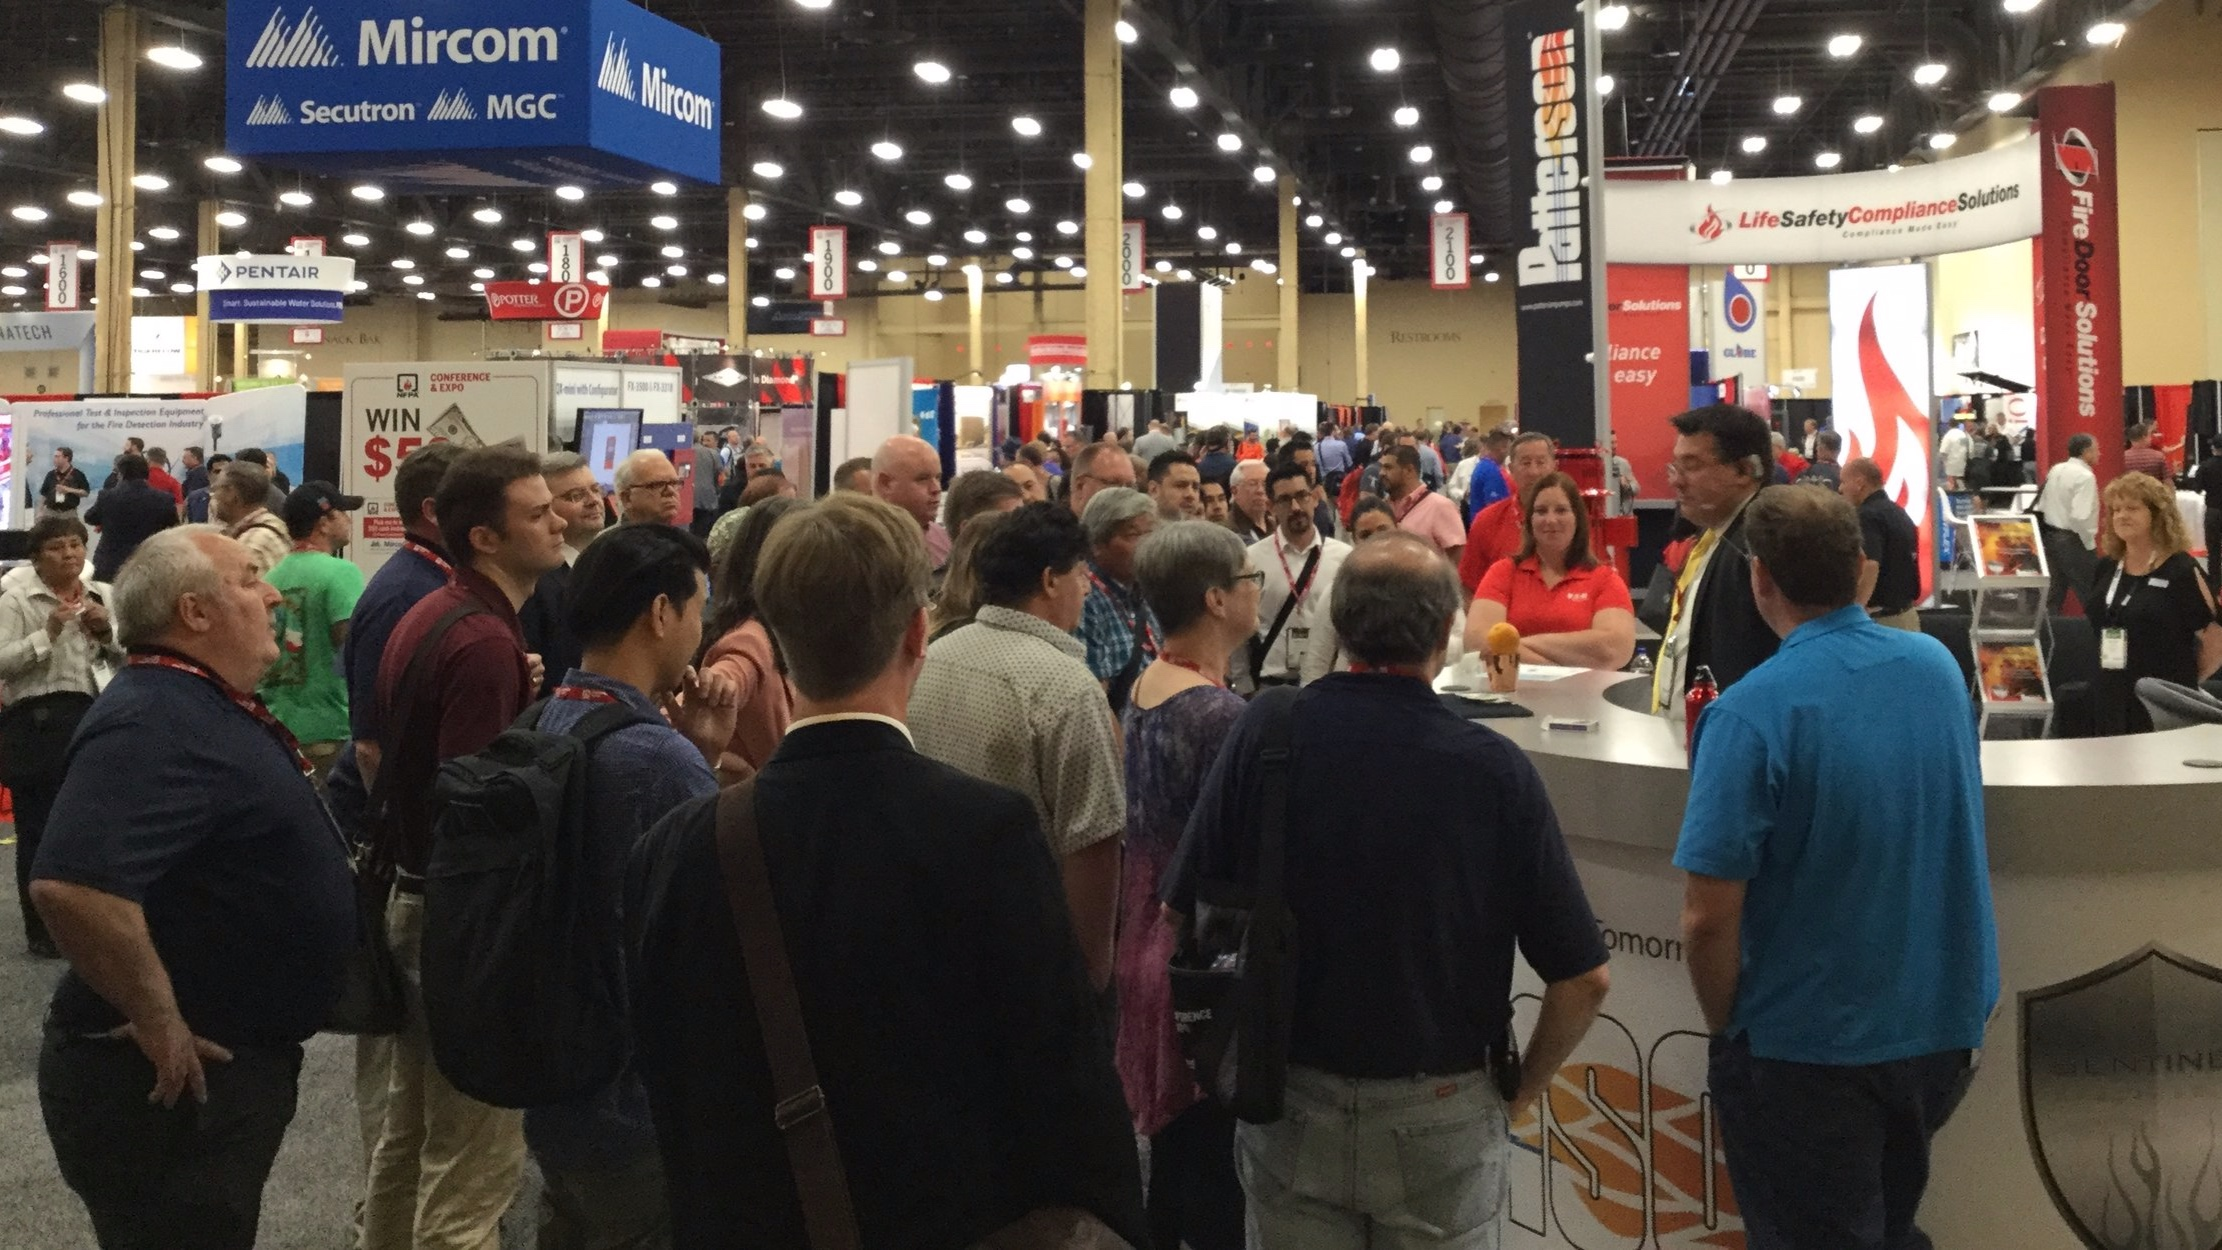 Mike Duseberg stops crowds for Patterson Pumps at NFPA 2018